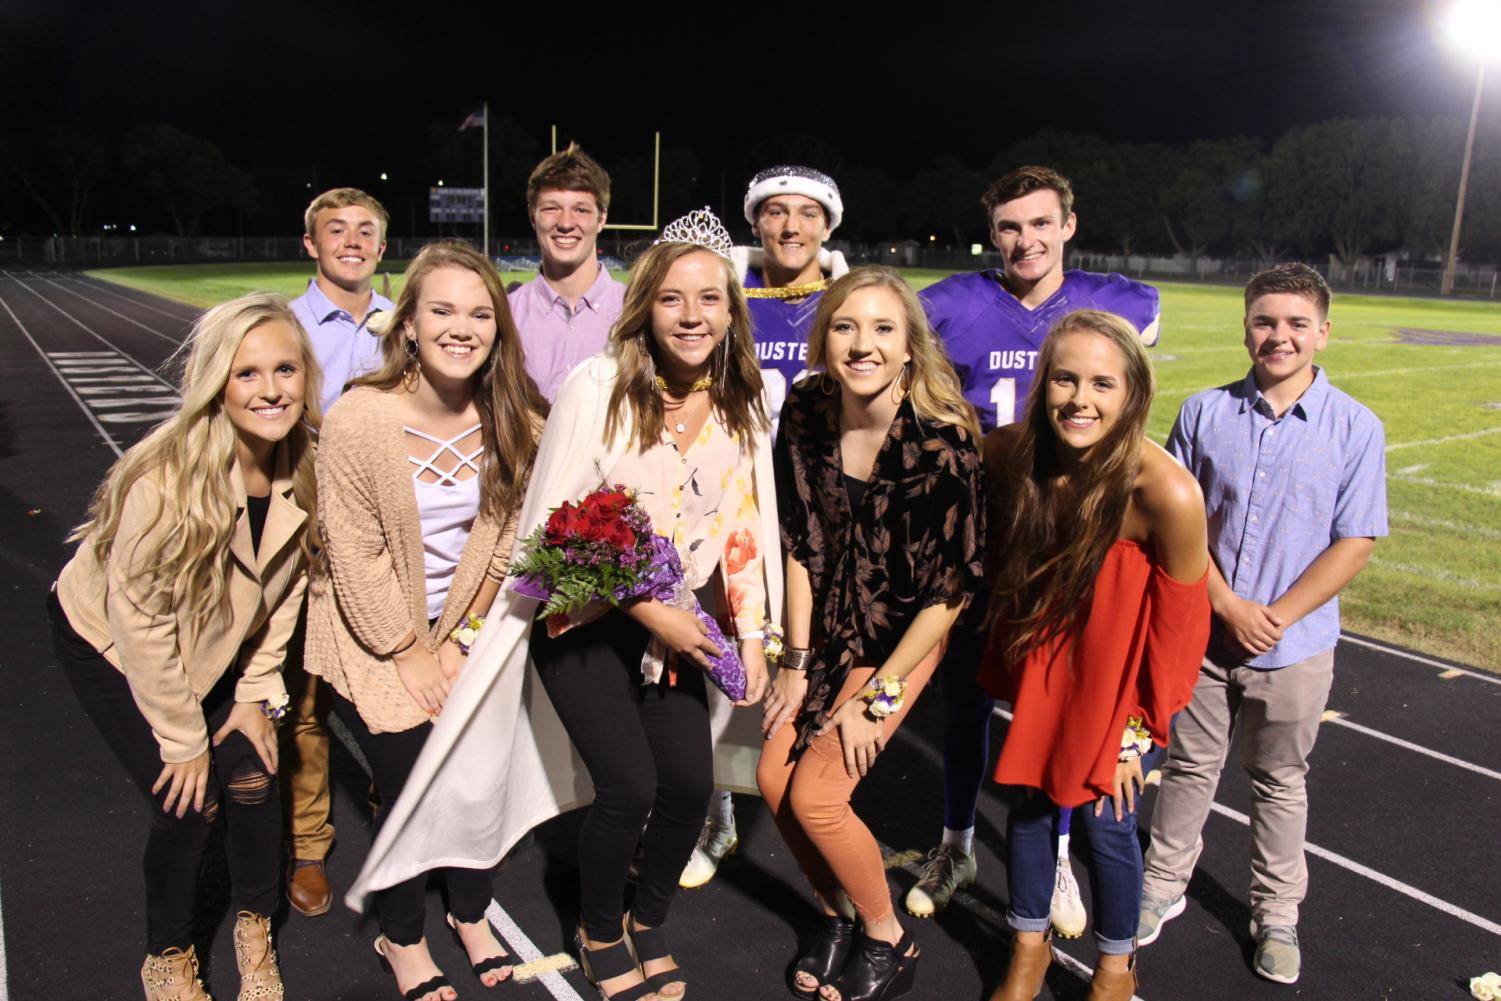 Homecoming Royalty: Front Row; Meredith Christensen, Toni Clayton, Queen Kelsey Belgum, Alexa Berney and Addison Johnson. Back Row: Matt Anderson, Dantley Edgren, King Aaron Drews, Drake Johnson, and Spencer Knuth.